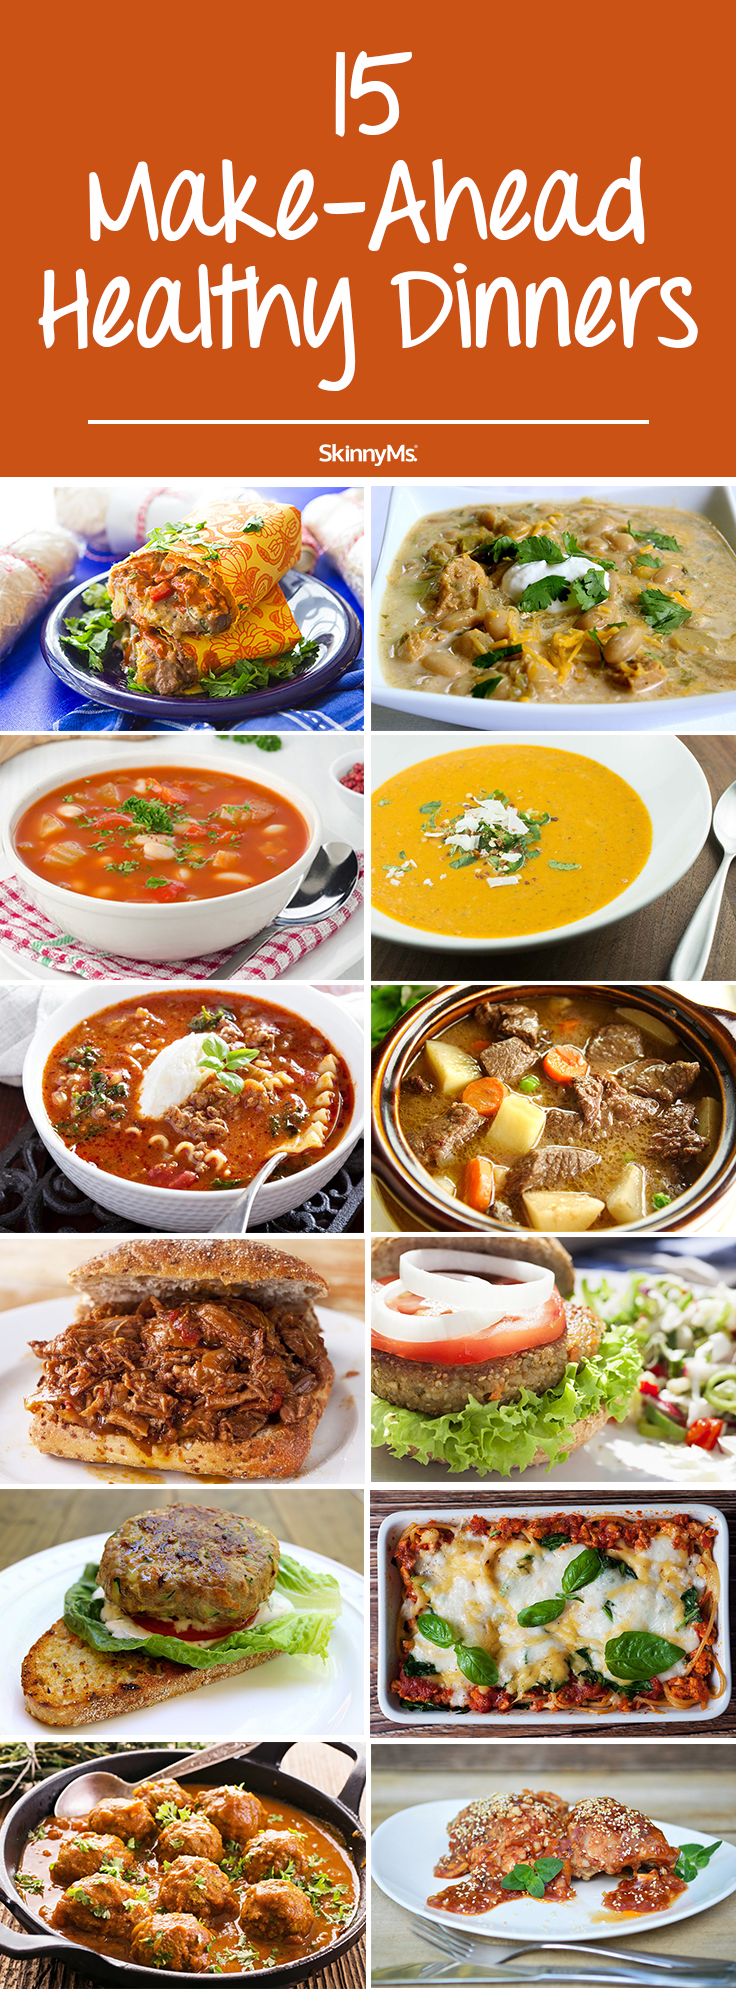 15 Make-Ahead Healthy Dinners images